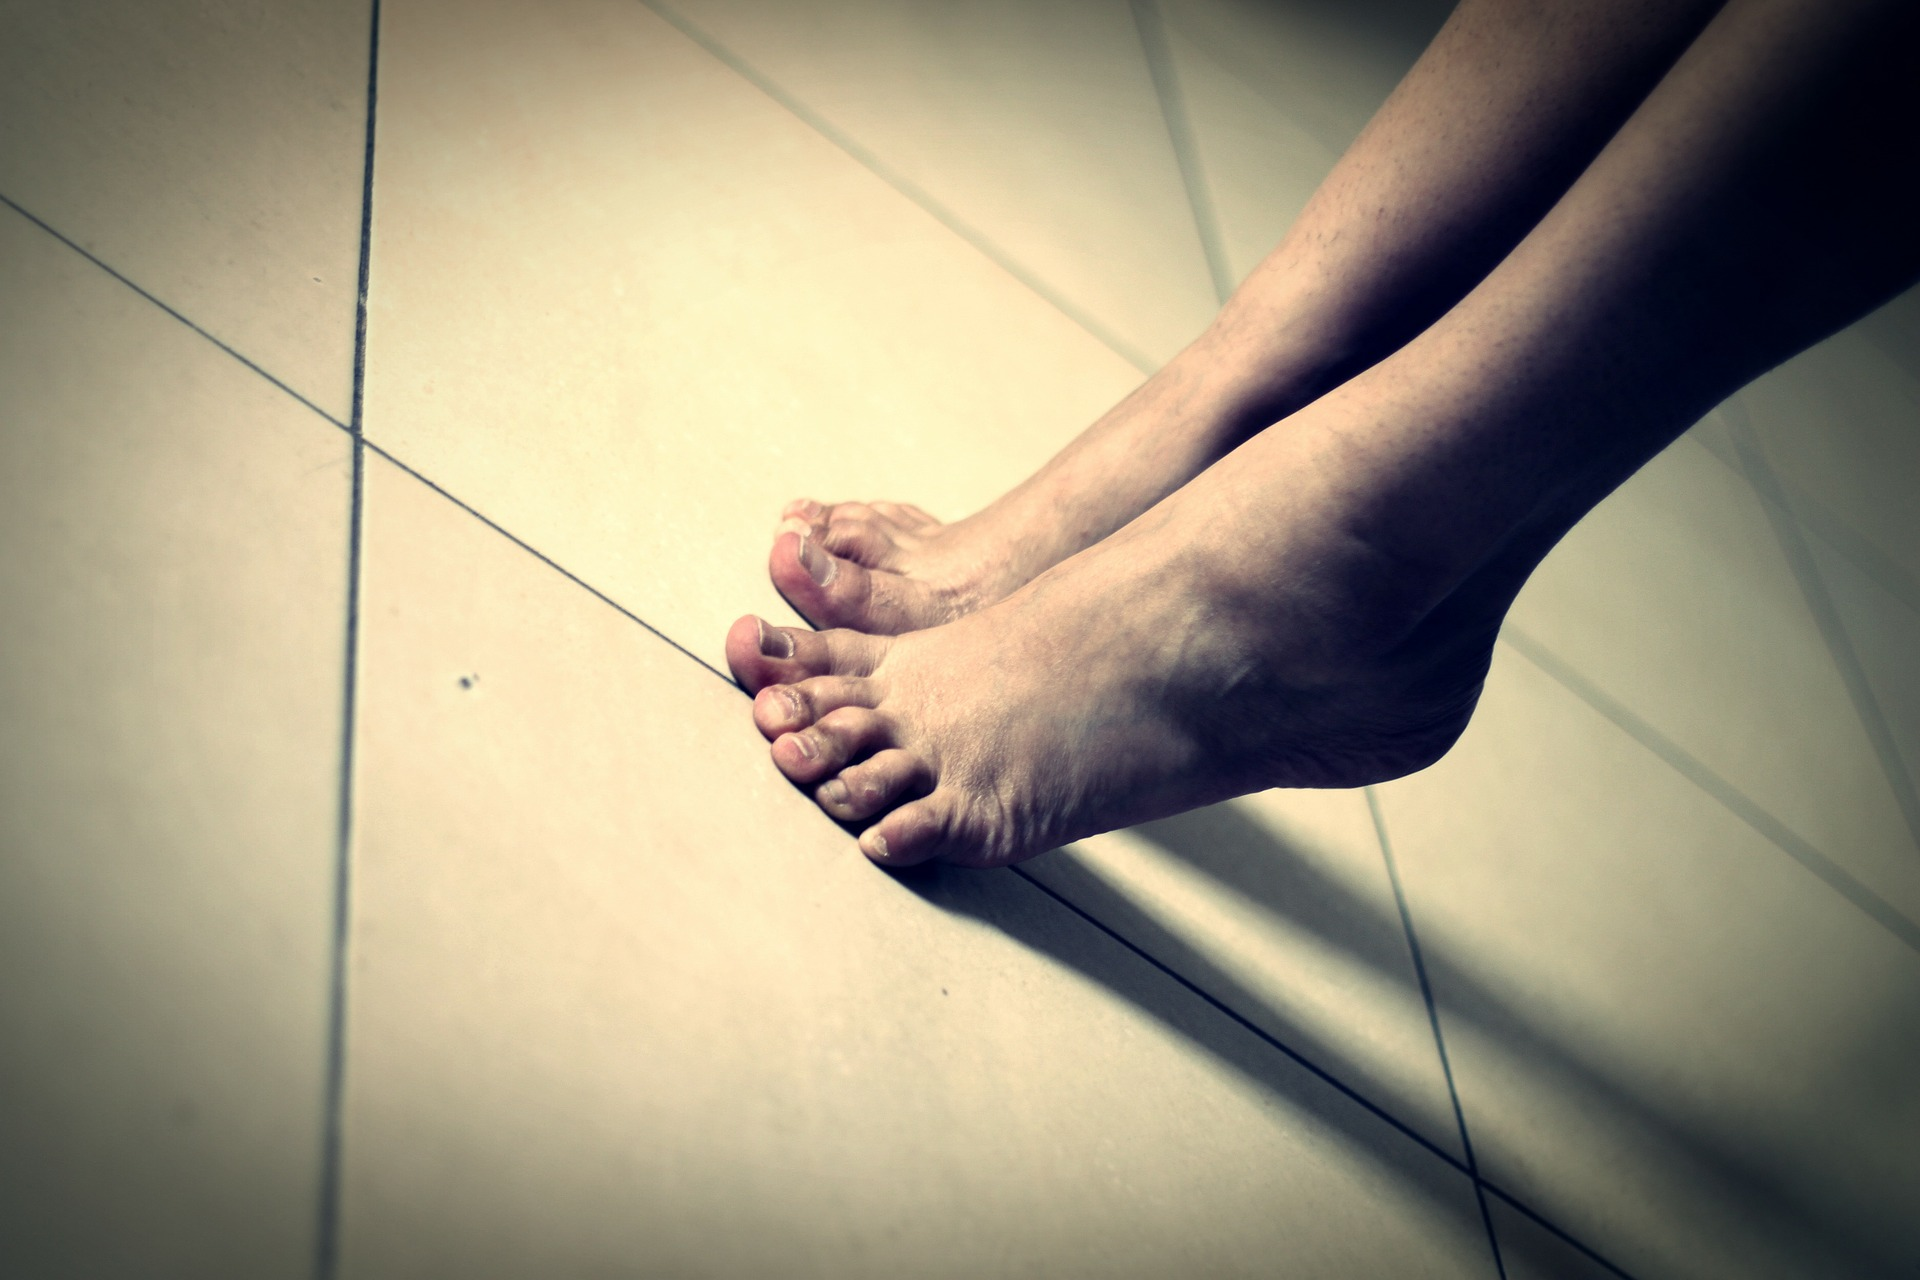 Image showing feet standing on tiptoe